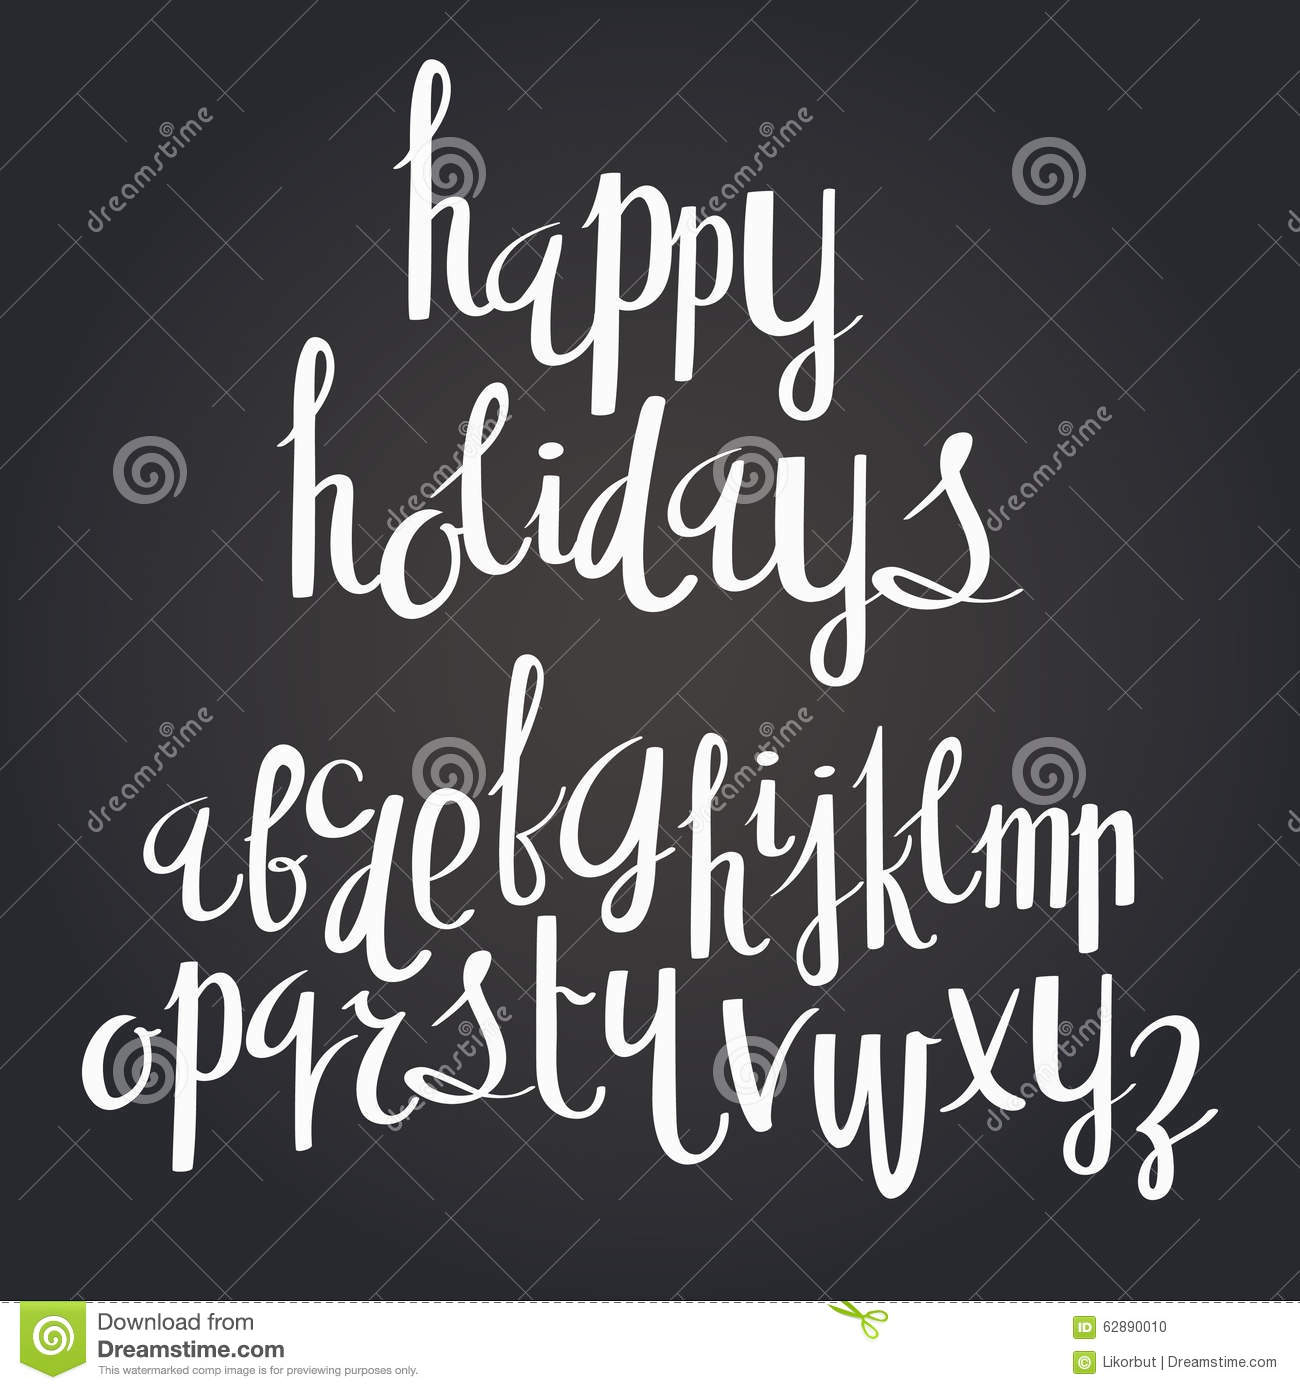 Happy holidays handwritten calligraphy quote font